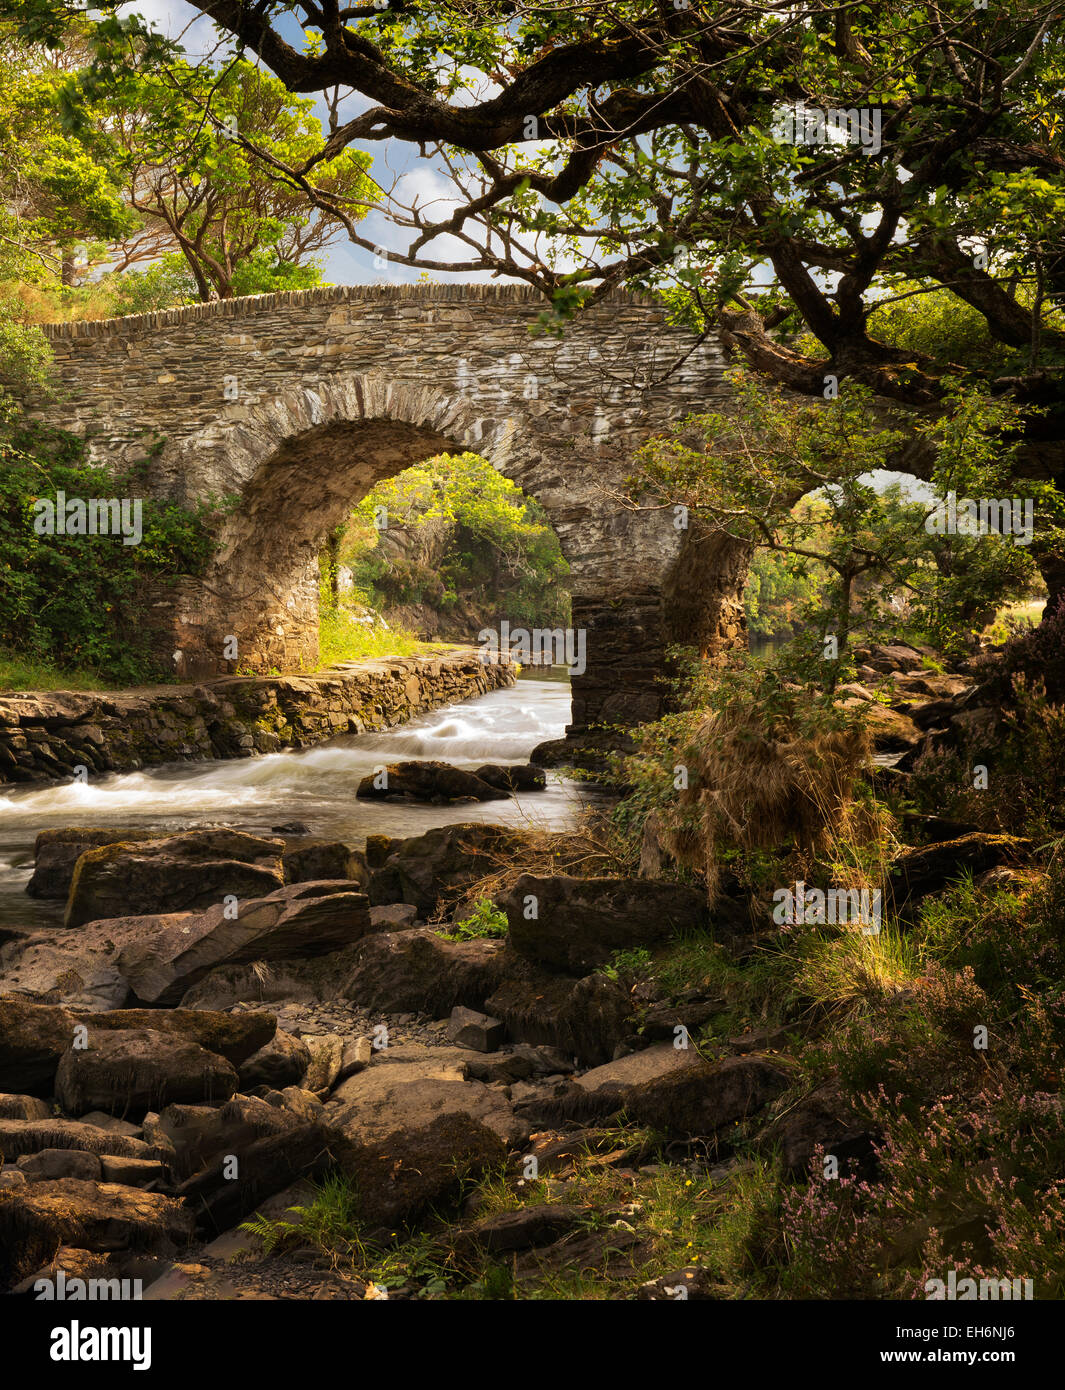 Old weir bridge. Kilanrney Lakes, Gap of Dunloe. Killarney National Park, Ireland - Stock Image